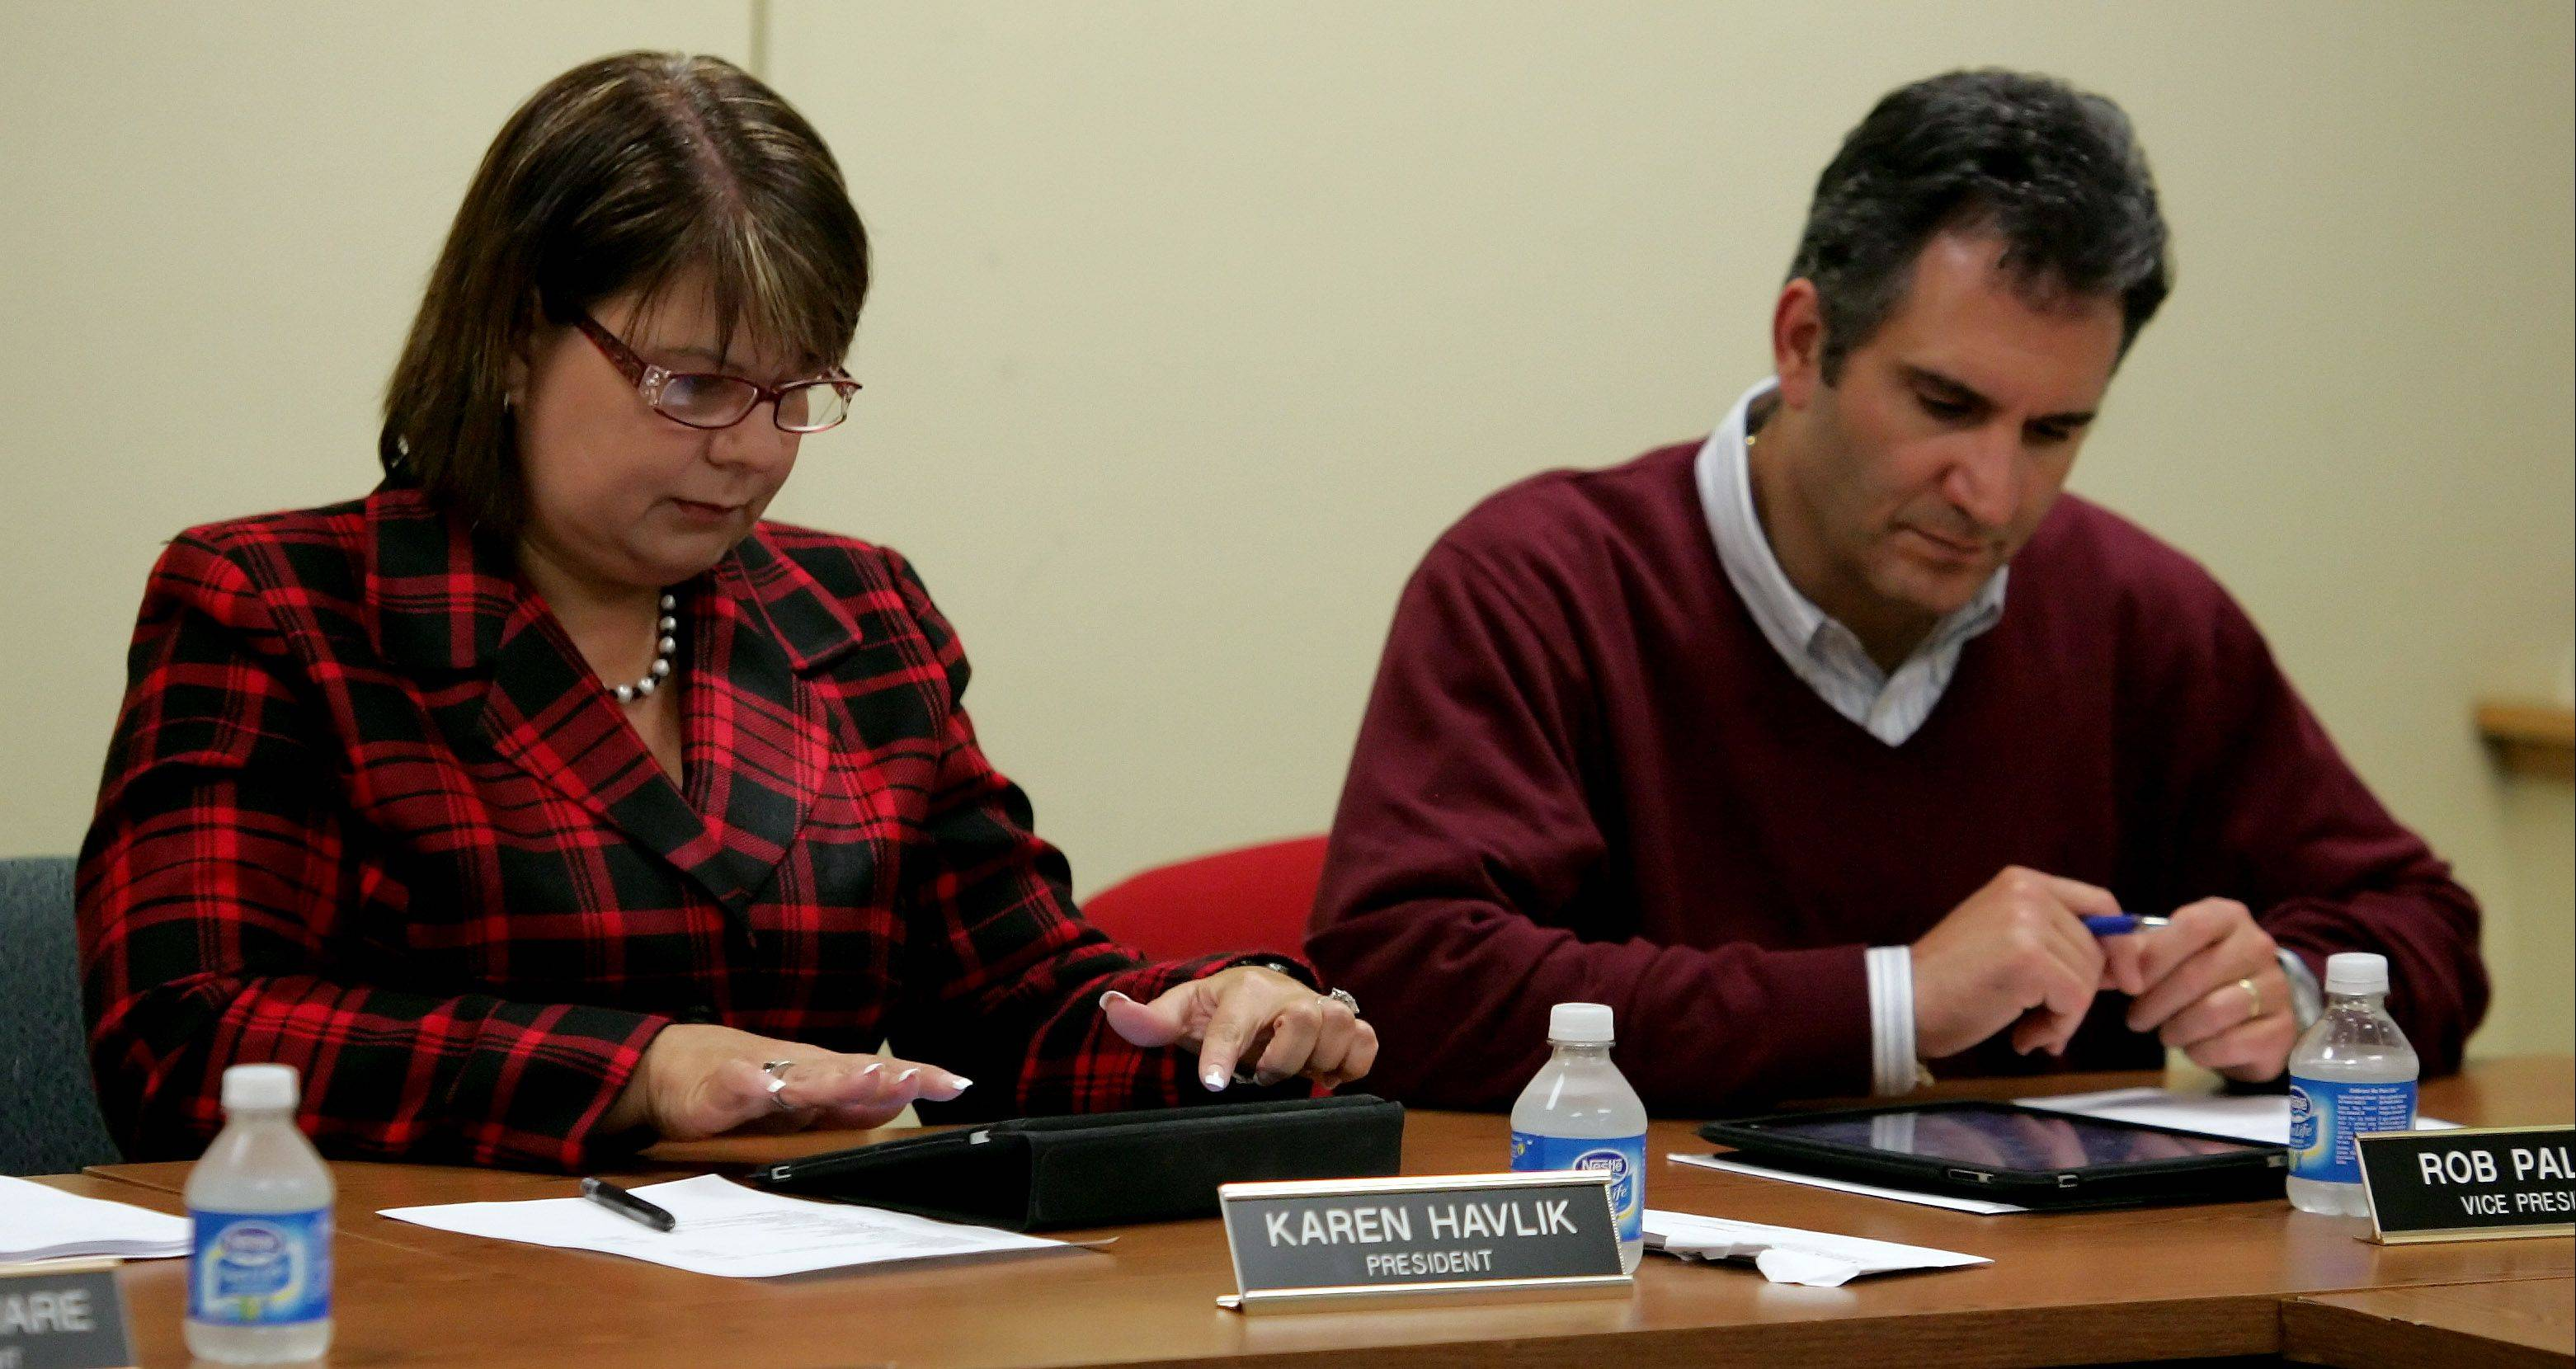 School board members Karen Havlik and Rob Paliani work on their Apple iPads during the Mundelein High School board meeting Tuesday. Sept. 27. The iPads cost about $500 to $800 each, but are expected to save money in paper costs and are more environmentally friendly.